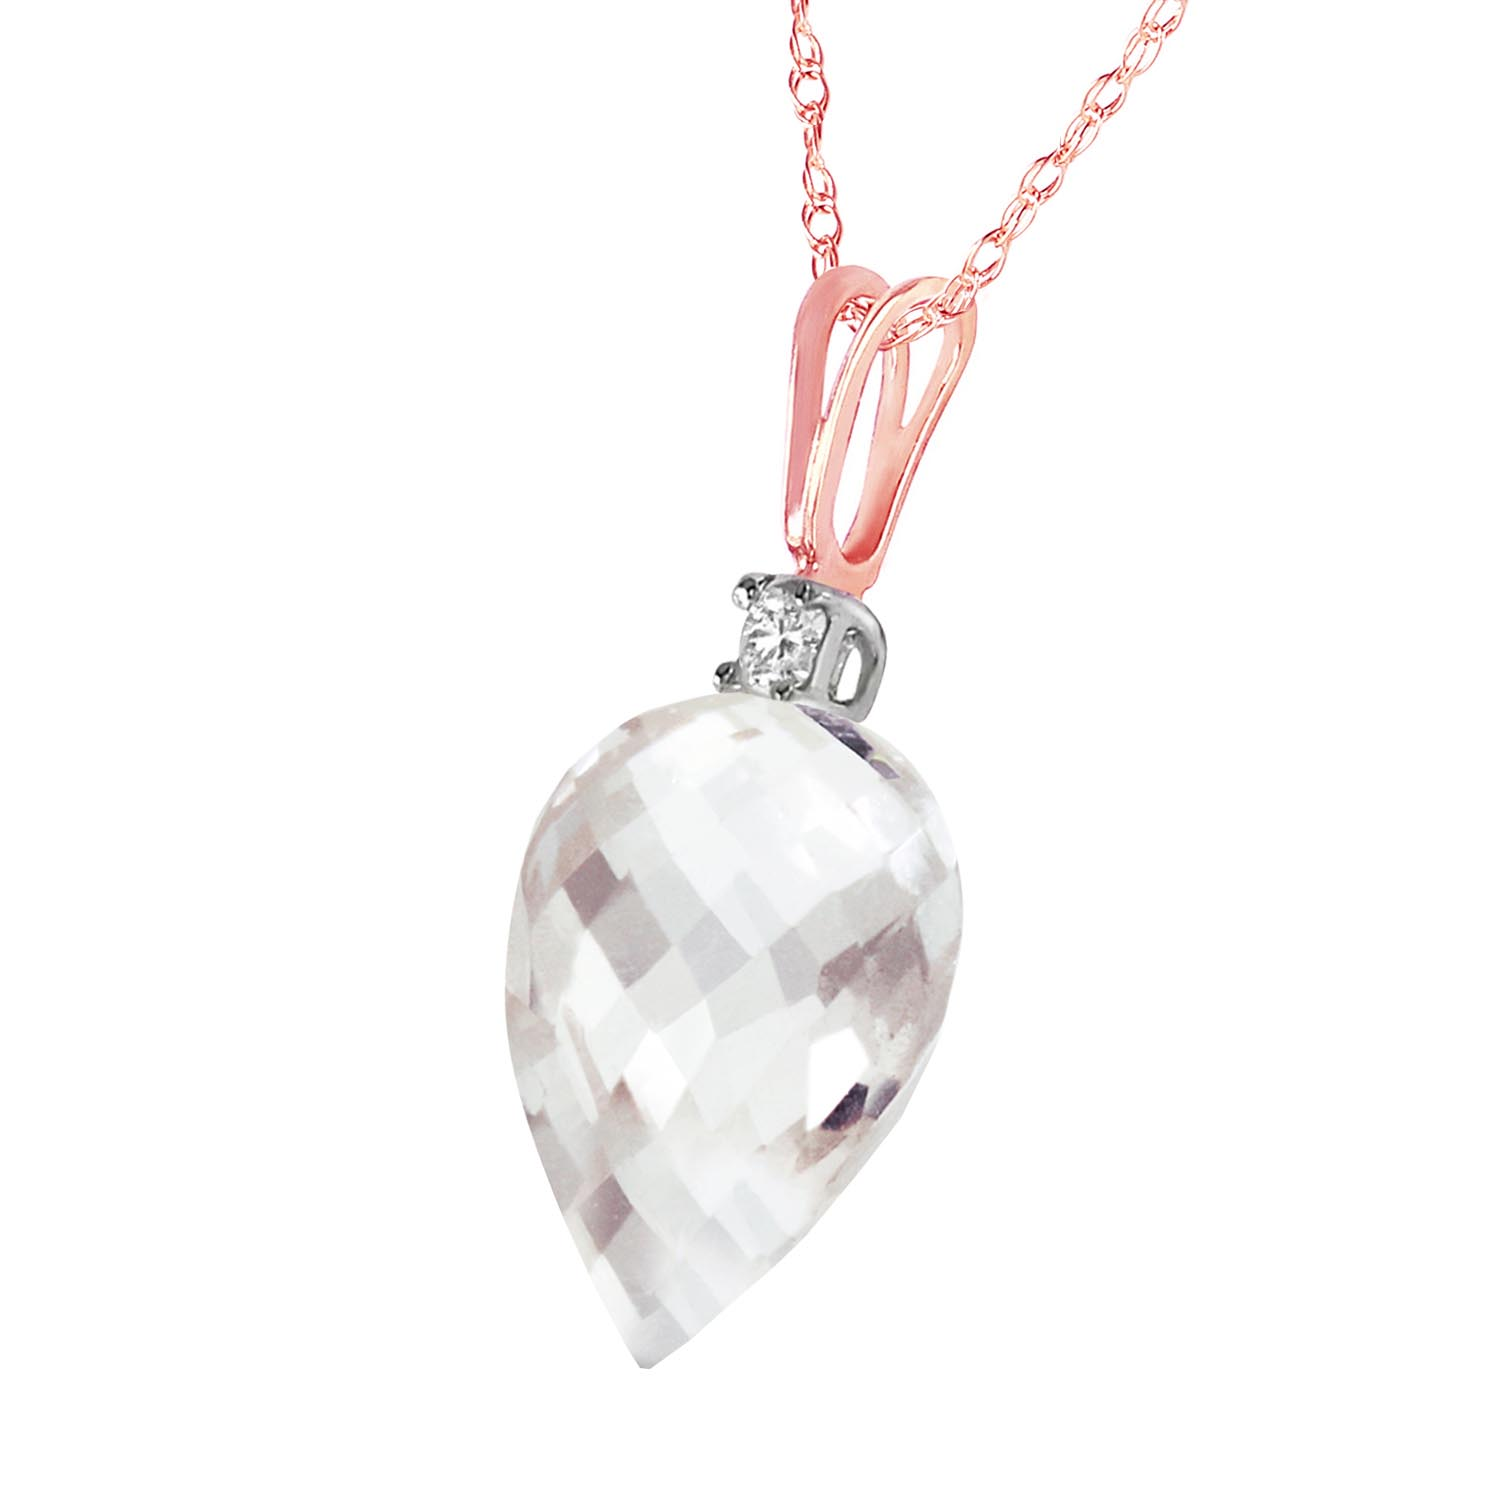 Pointed Briolette Cut White Topaz Pendant Necklace 12.3 ctw in 9ct Rose Gold